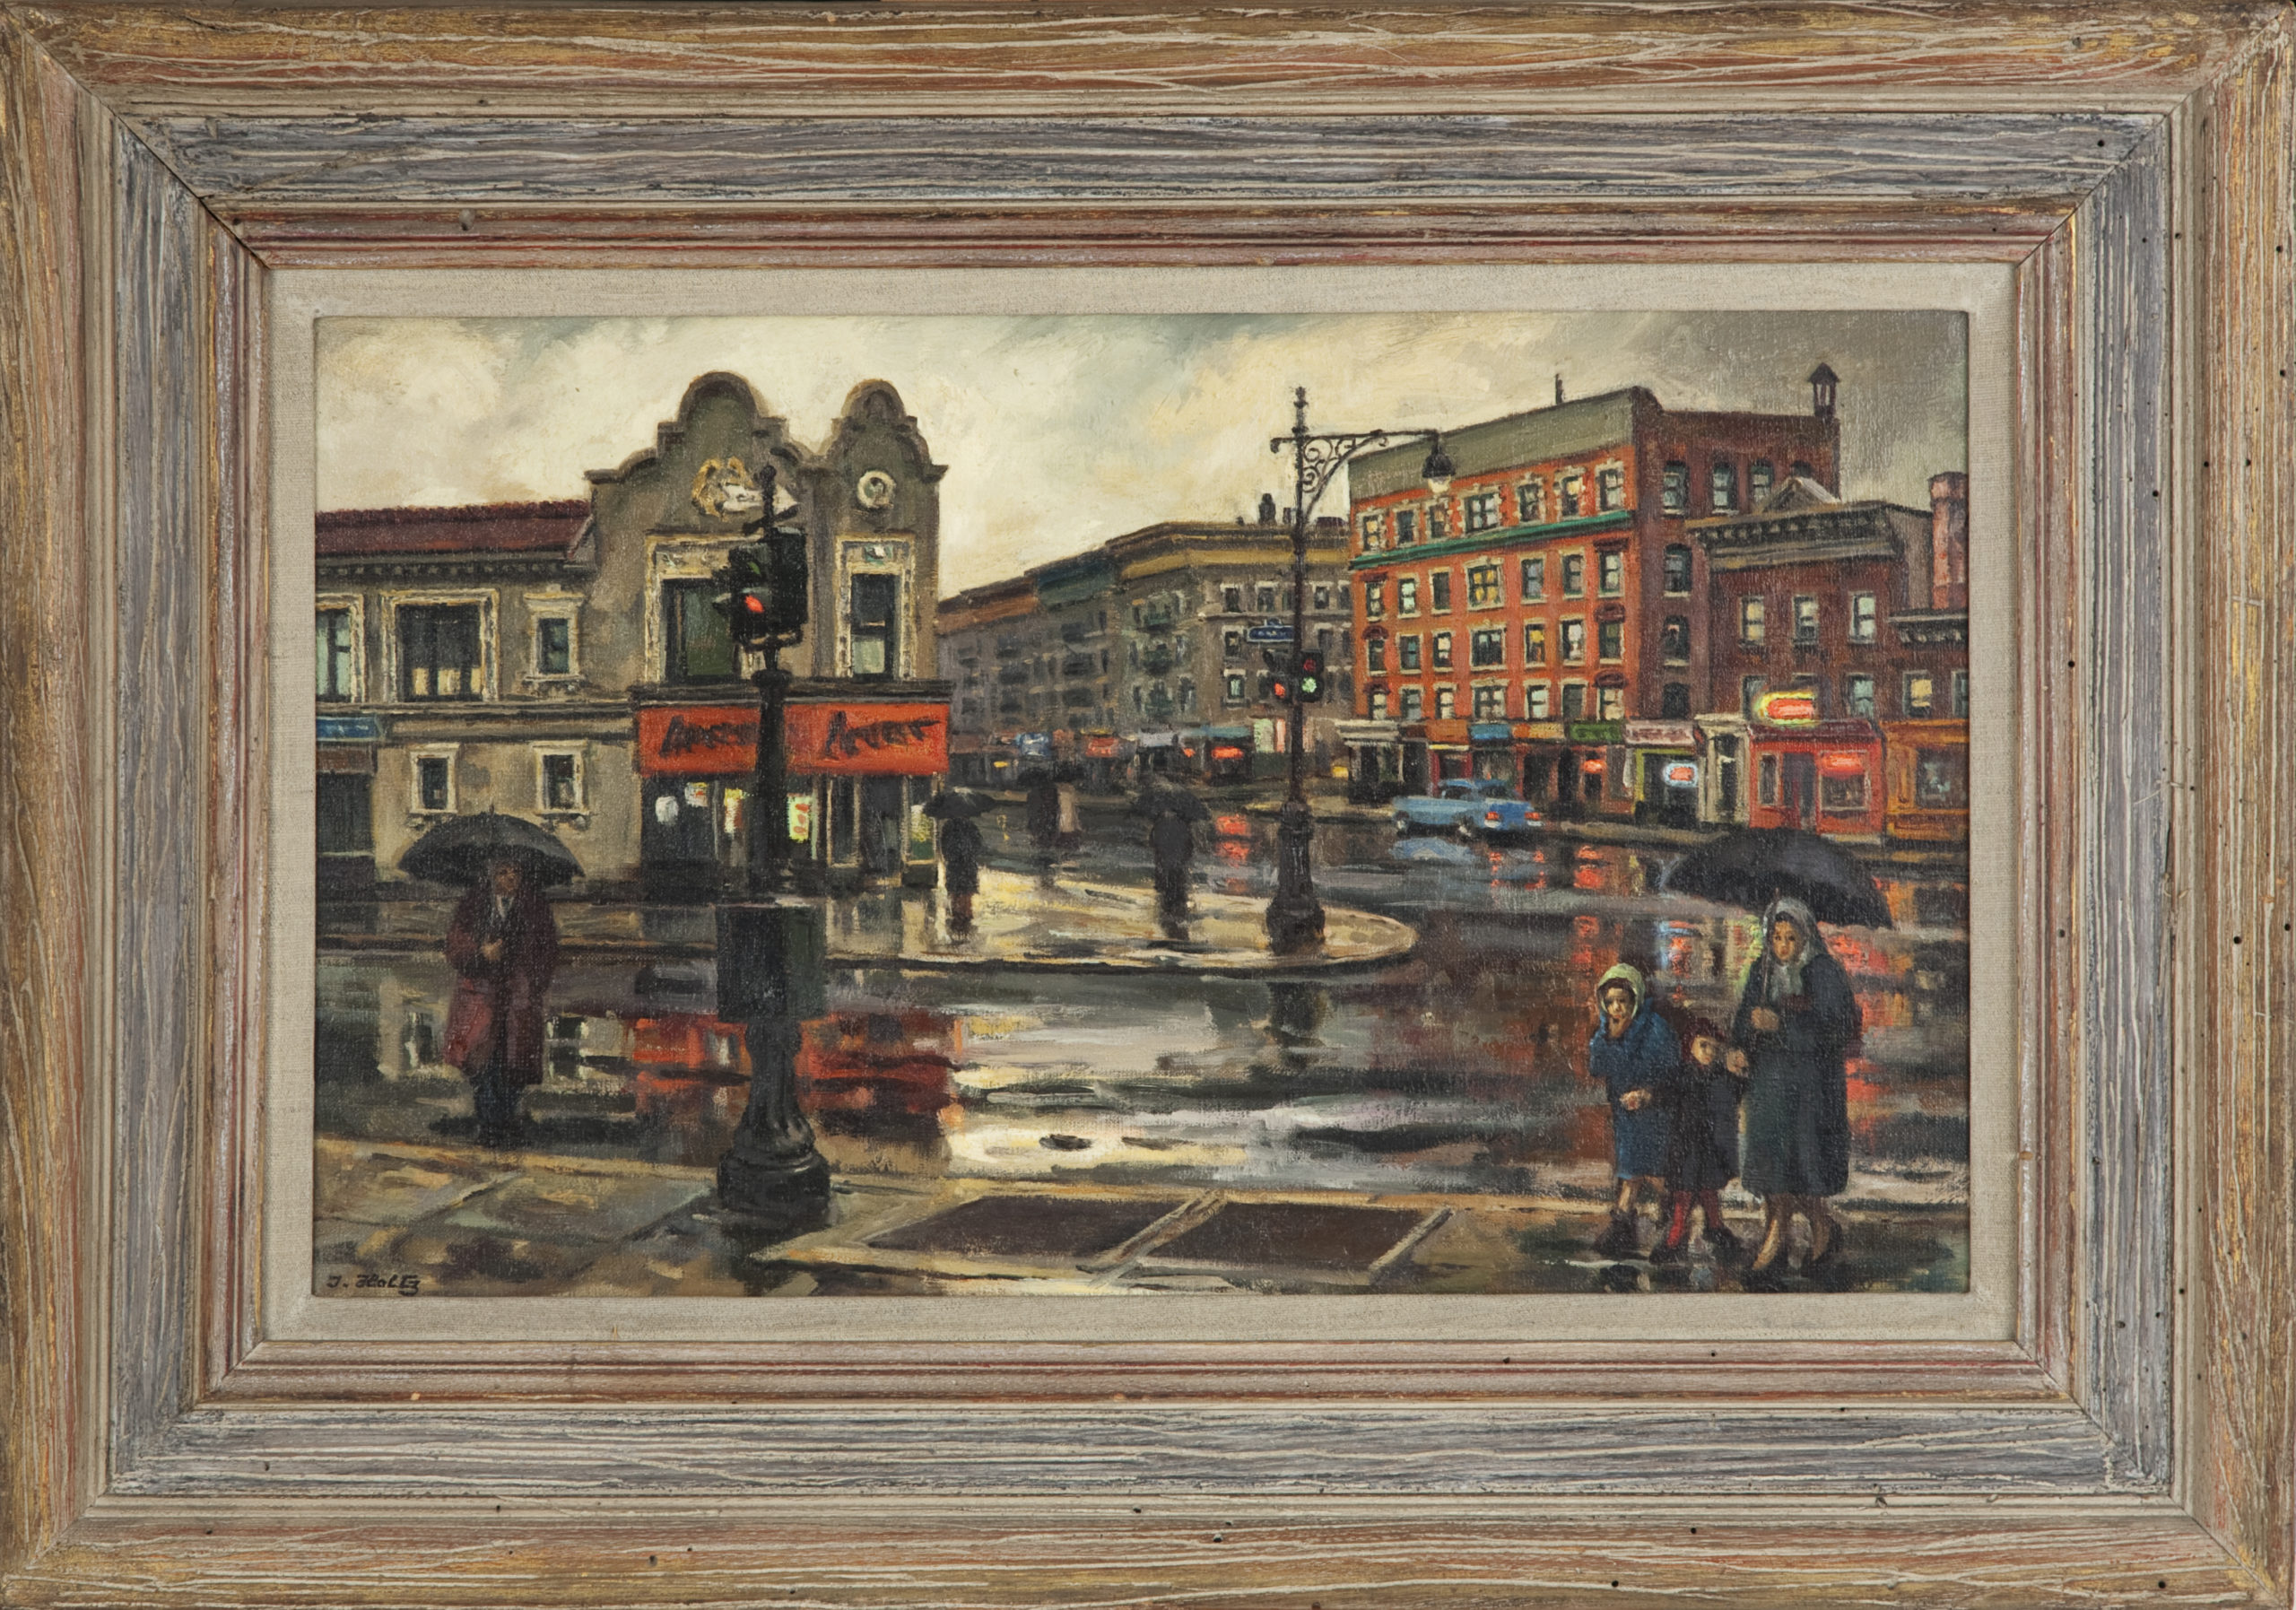 231 Rainy Street Scene 1965 - Oil on Canvas - 22.25 x 13 - Frame: 29.5 x 20.5 x 2